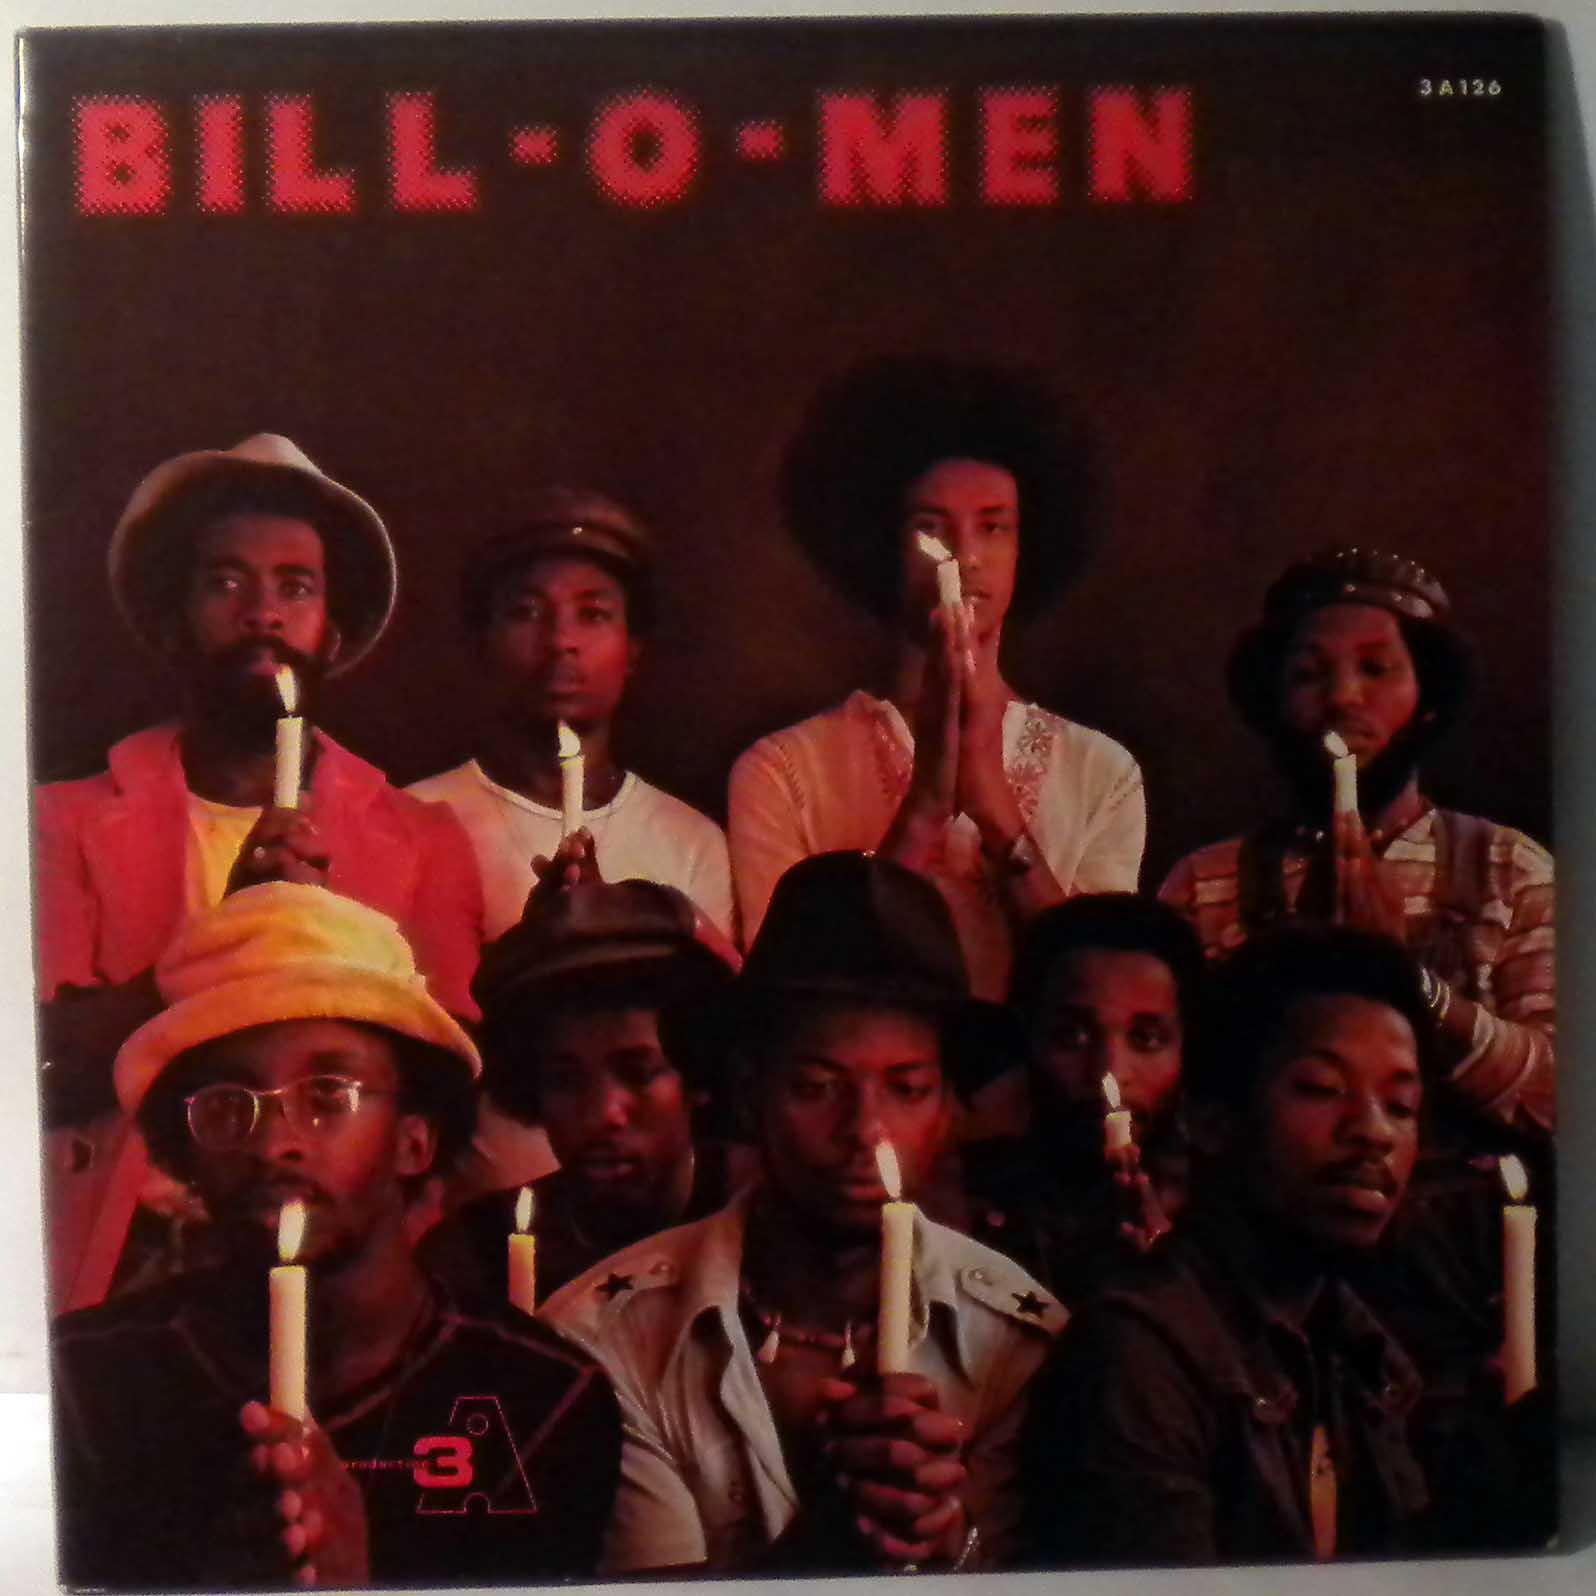 BILL-O-MEN - Same - 33T